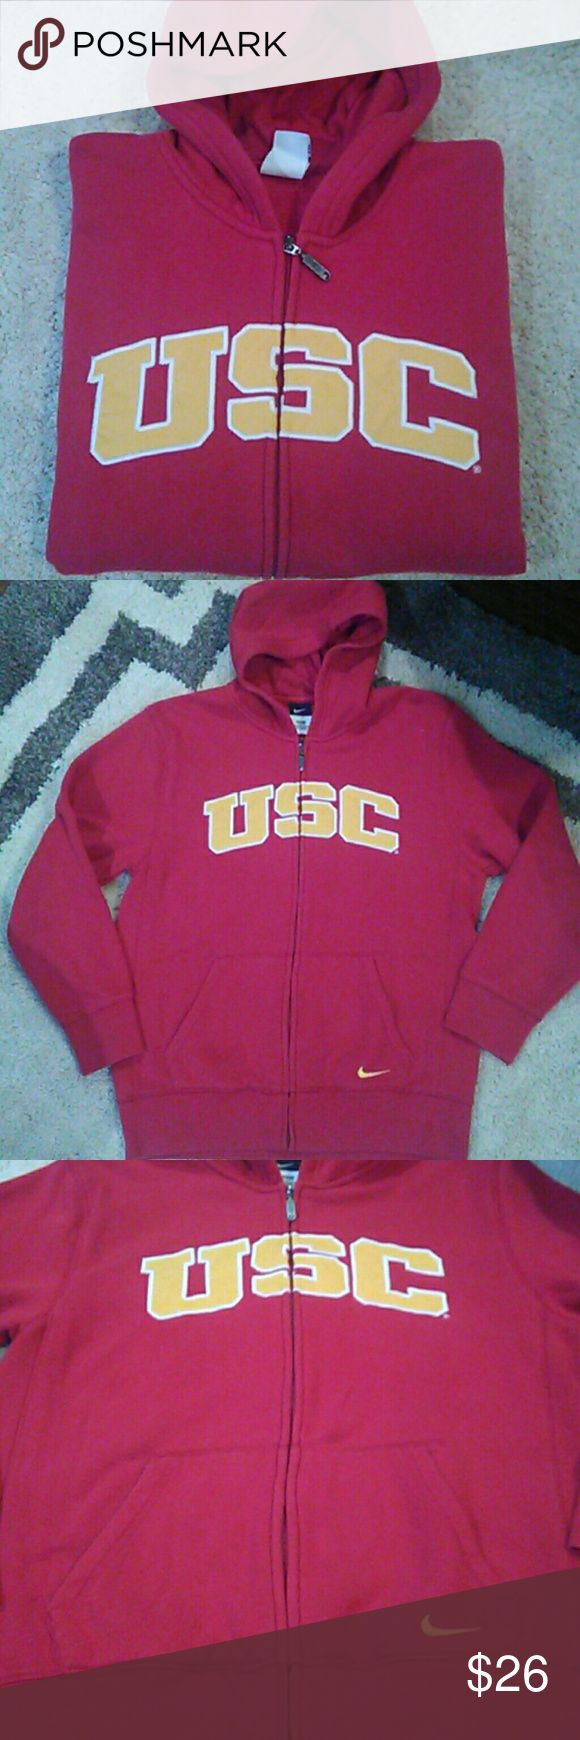 University Southern California Nike Hoodie USC Trojans University Of Southern California Nike hoodie. Kangaroo pockets in front. Nothing on back. More pictures provided if needed. I wore this once or twice. Child's size 16/18. Fits an adult small. Nike Jackets & Coats